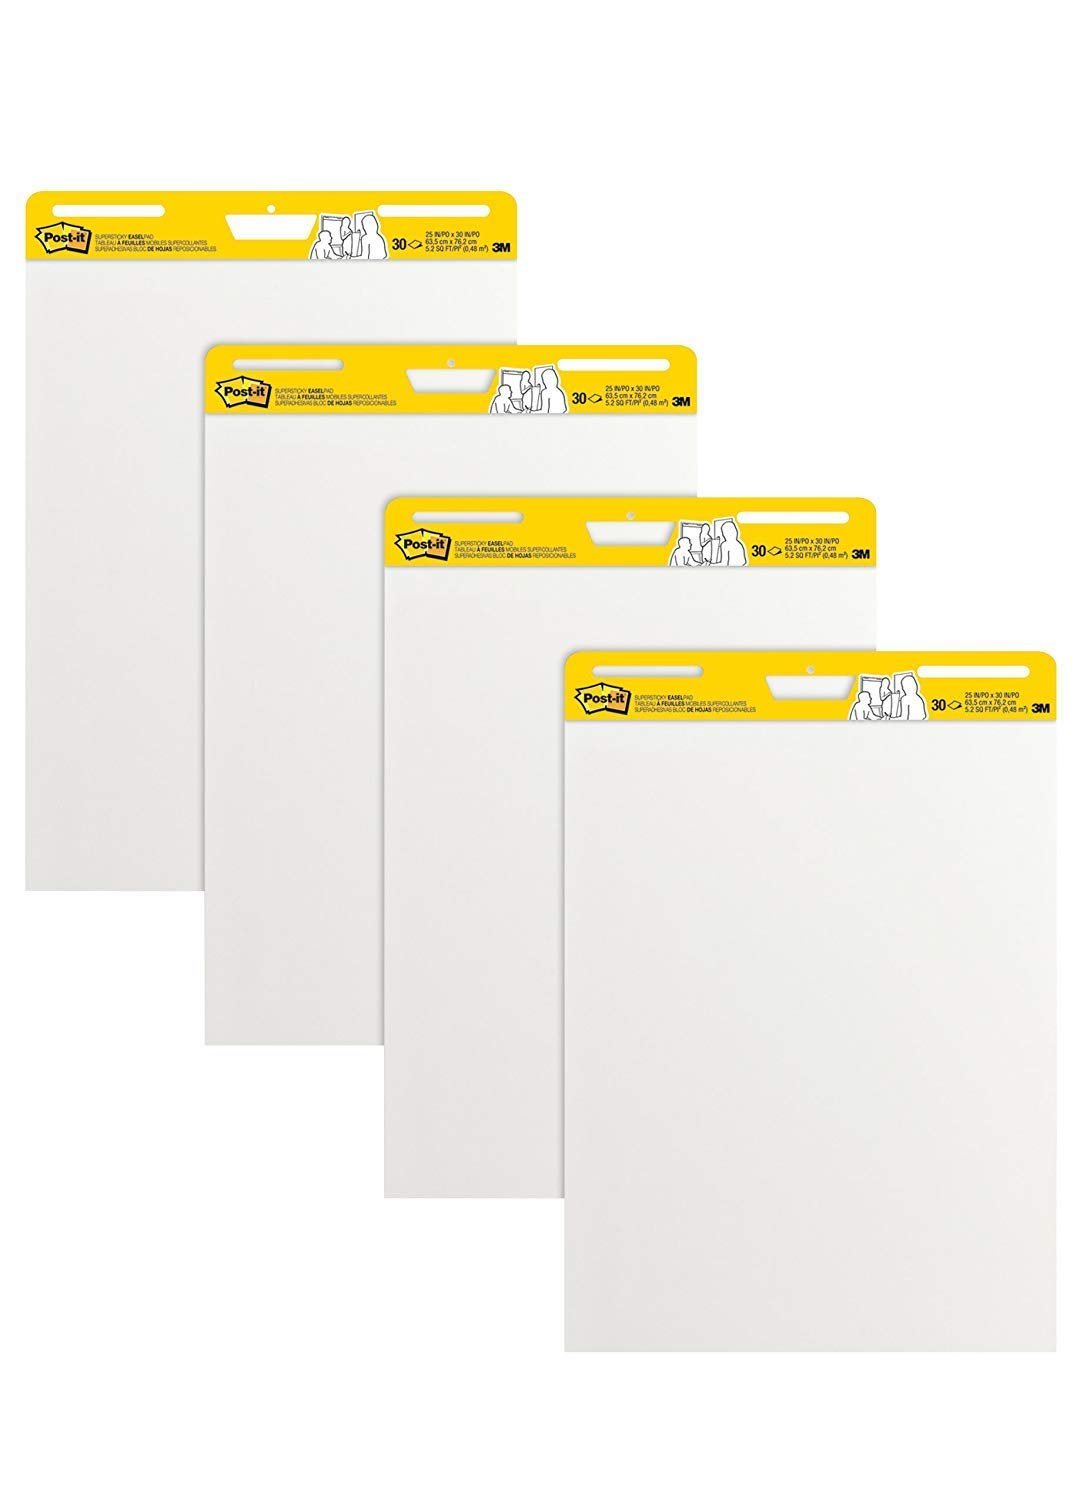 Post-it Super Sticky Easel Pad MRRG 25 x 30 Inches, 30 Sheets/Pad, 6 Pads, Large White Premium Self Stick Flip Chart Paper, Super Sticking Power